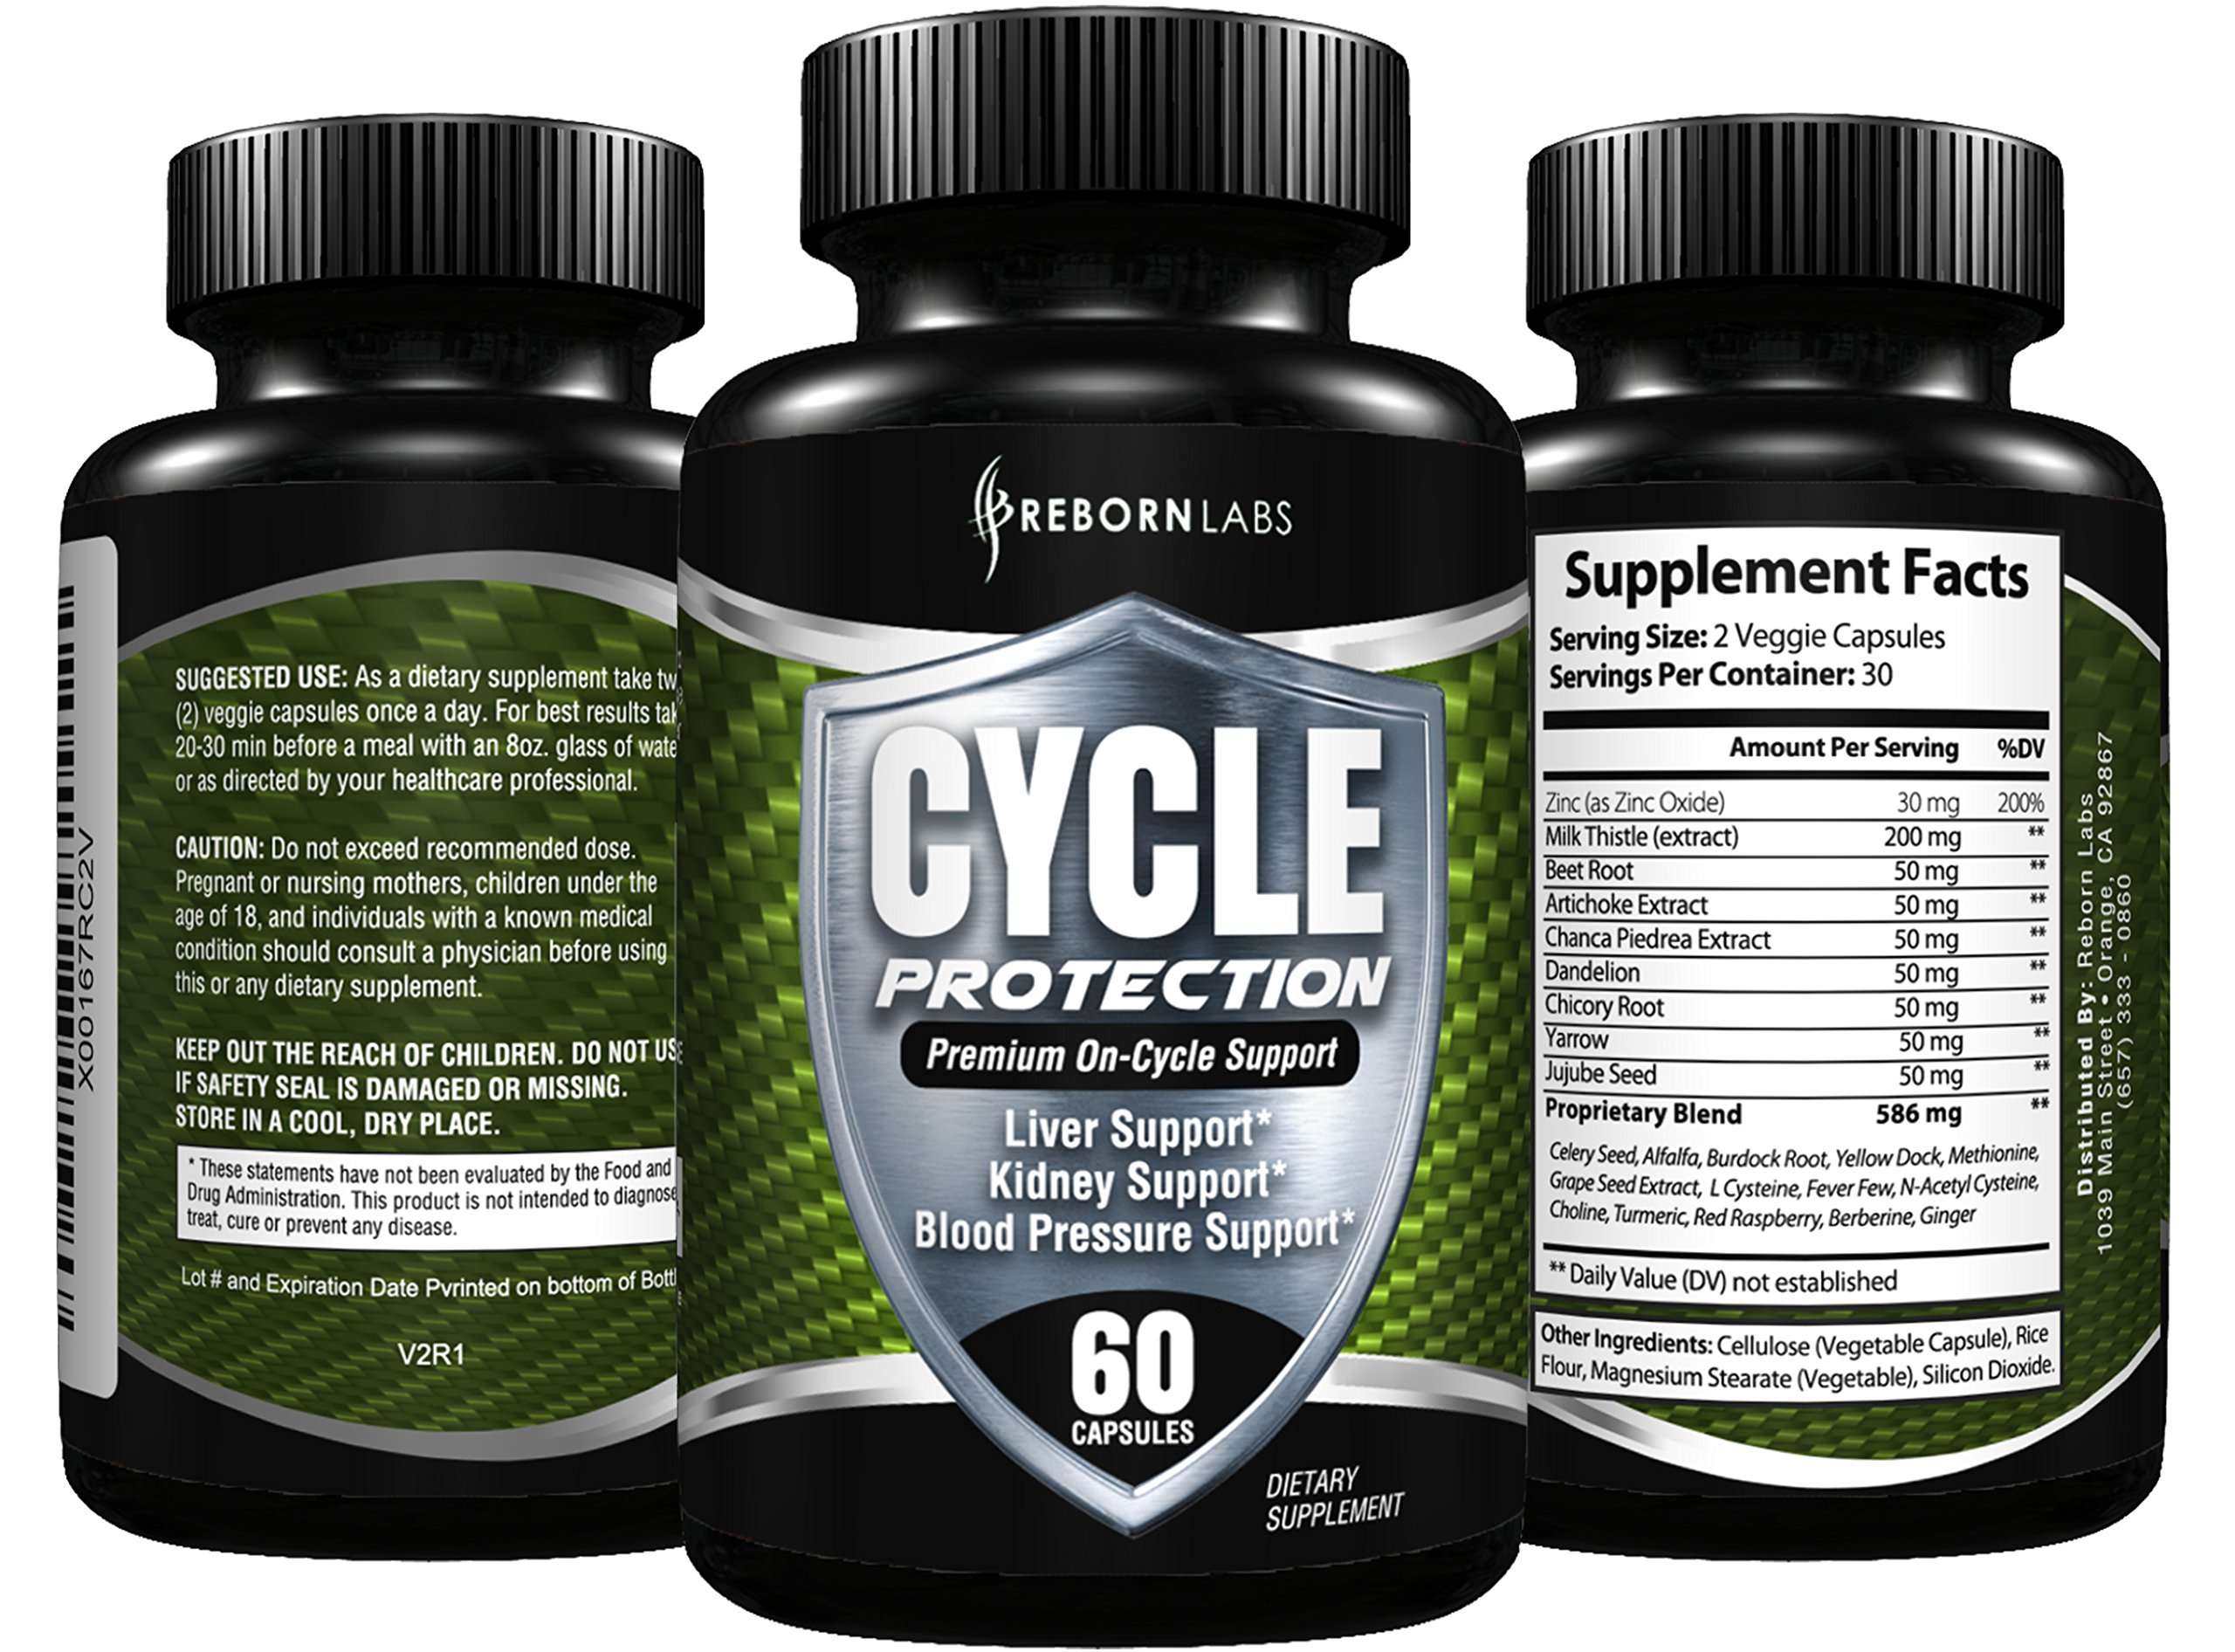 CYCLE PROTECTION | Cycle Support Supplement with Liver Support, Organ Support & Estrogen Blocker | Natural All-In-One Formula for a Balanced Body | With Zinc as a Natural Testosterone Booster